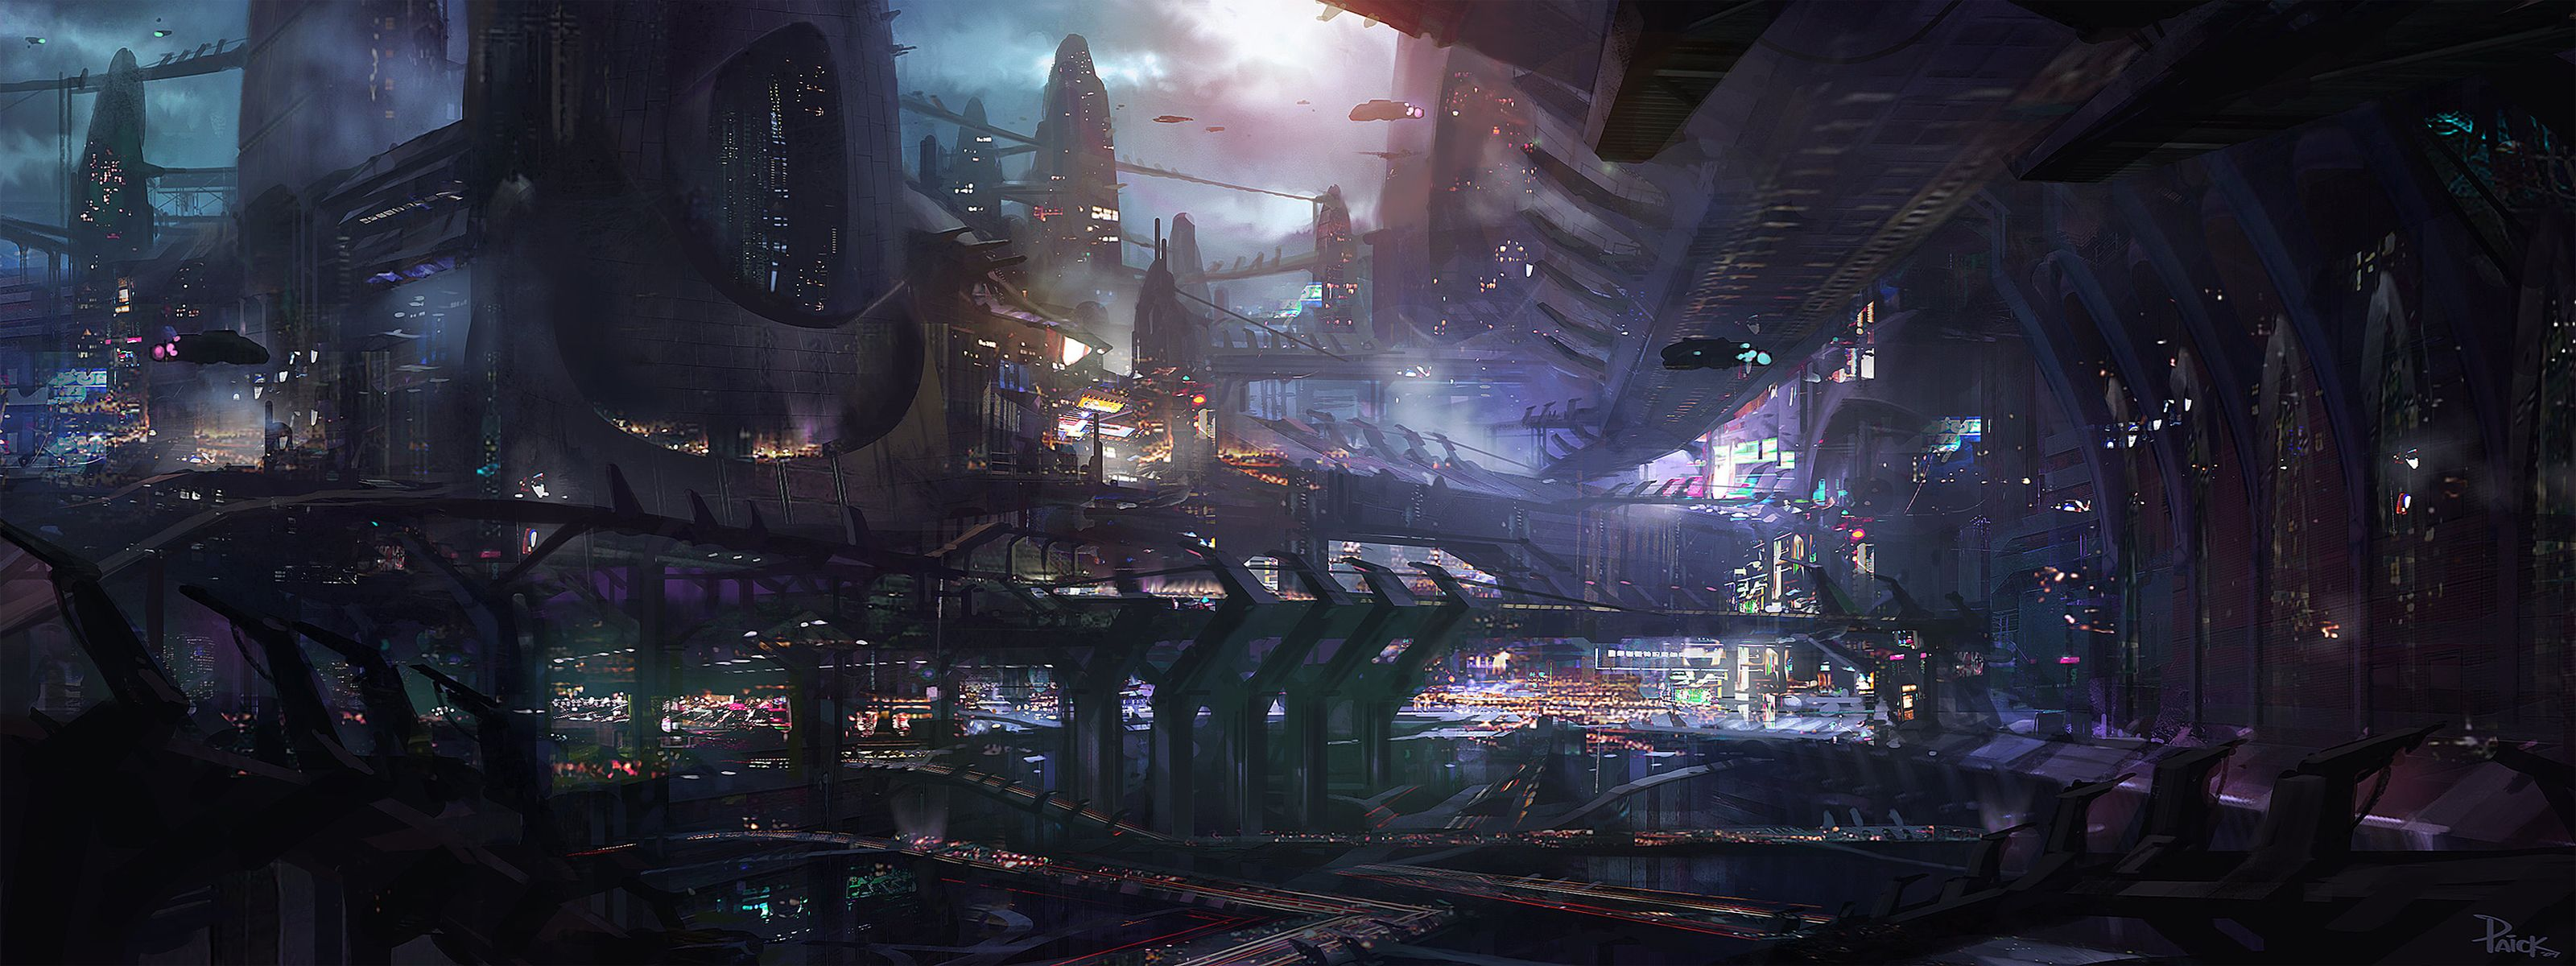 How To Set Different Wallpapers On Dual Monitors In Windows Futuristic City Sci Fi Wallpaper Concept Art World